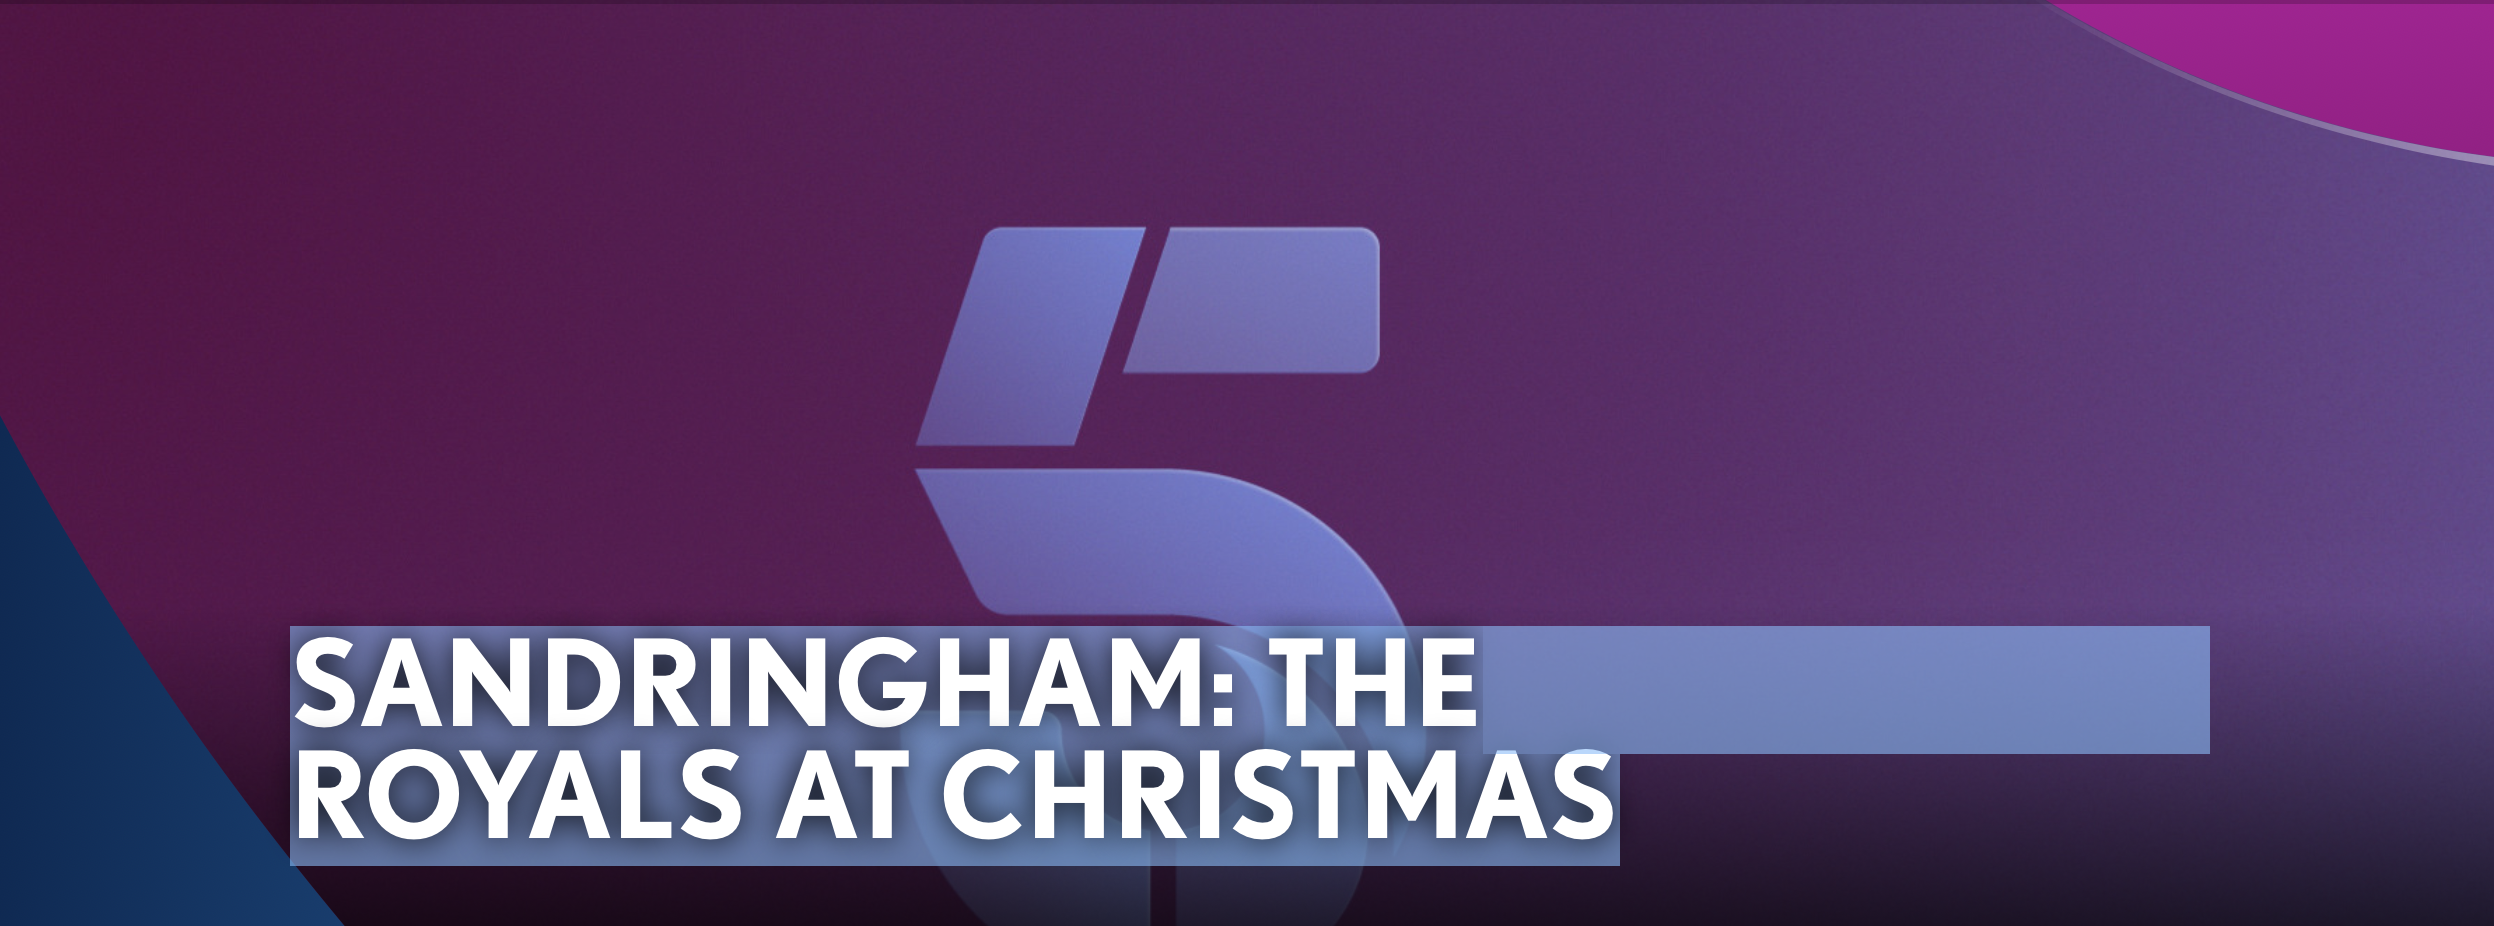 Sandringham - Royals at Christmas